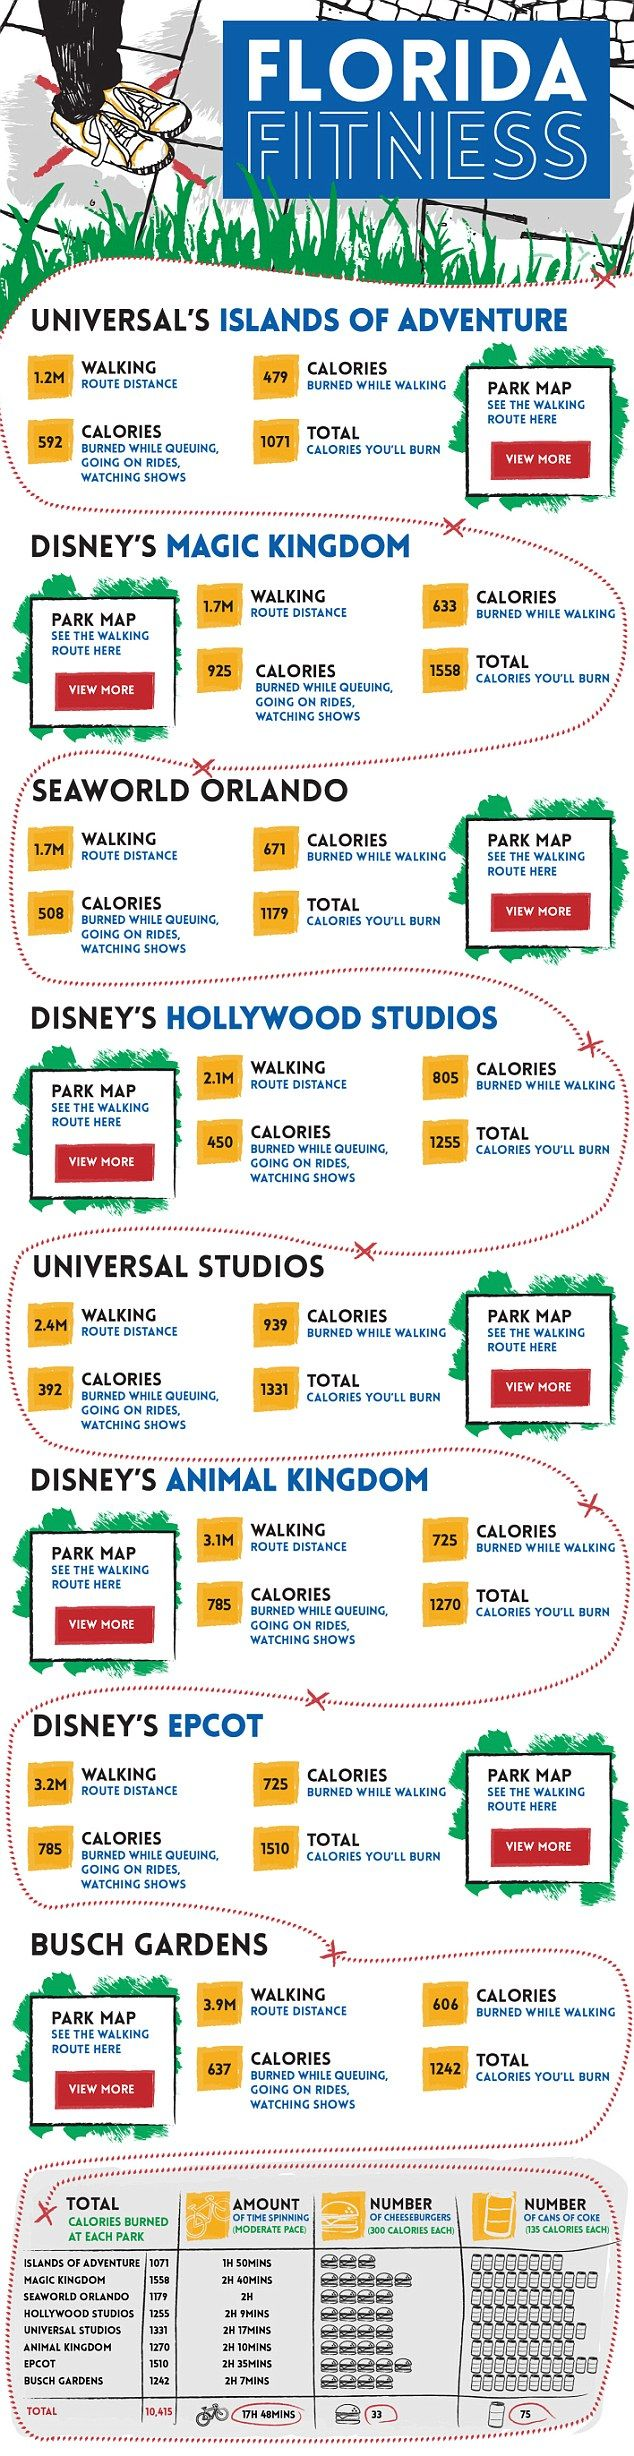 Disney World visitors can burn 1558 calories by walking around the theme park | Daily Mail Online